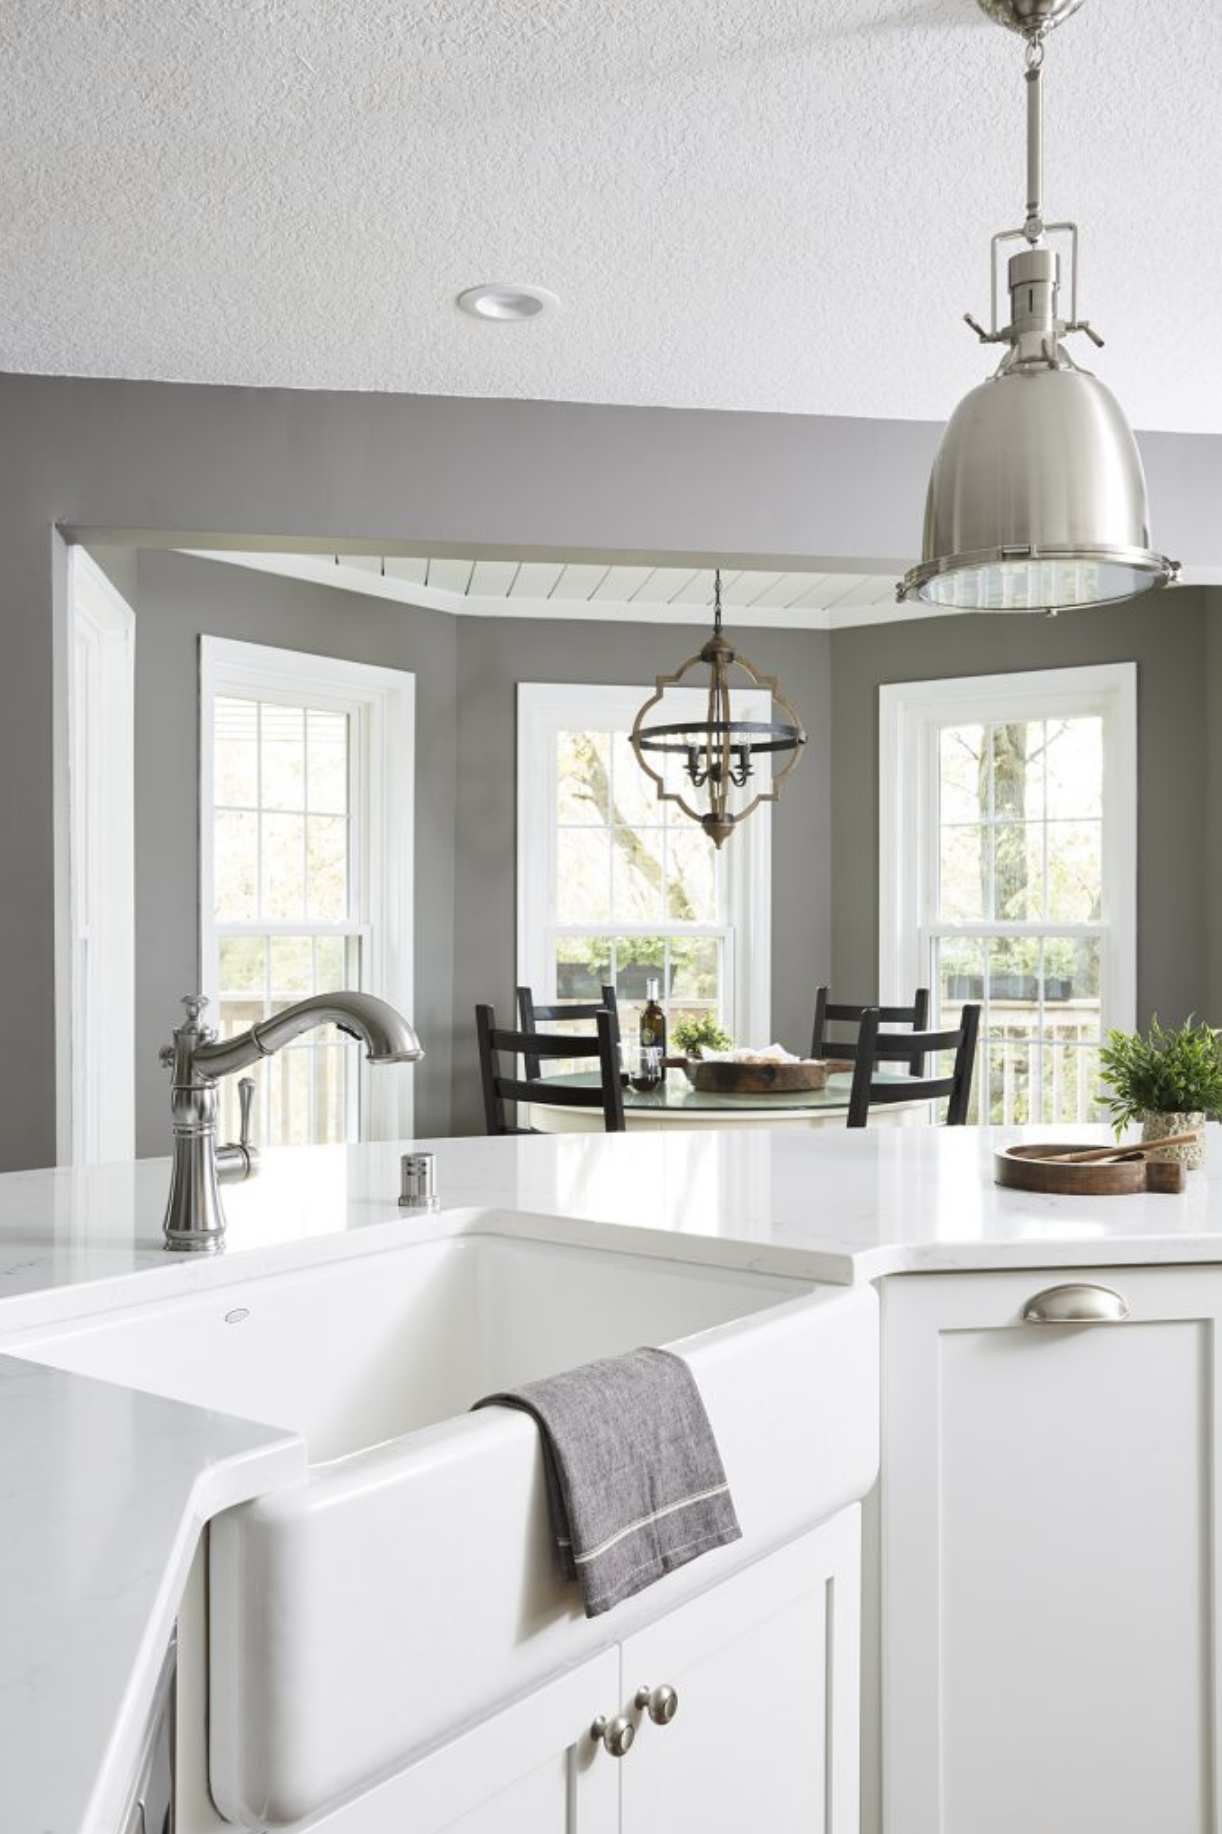 Bright white countertops were built around a farmhouse-style sink for a classic and timeless kitchen aesthetic.